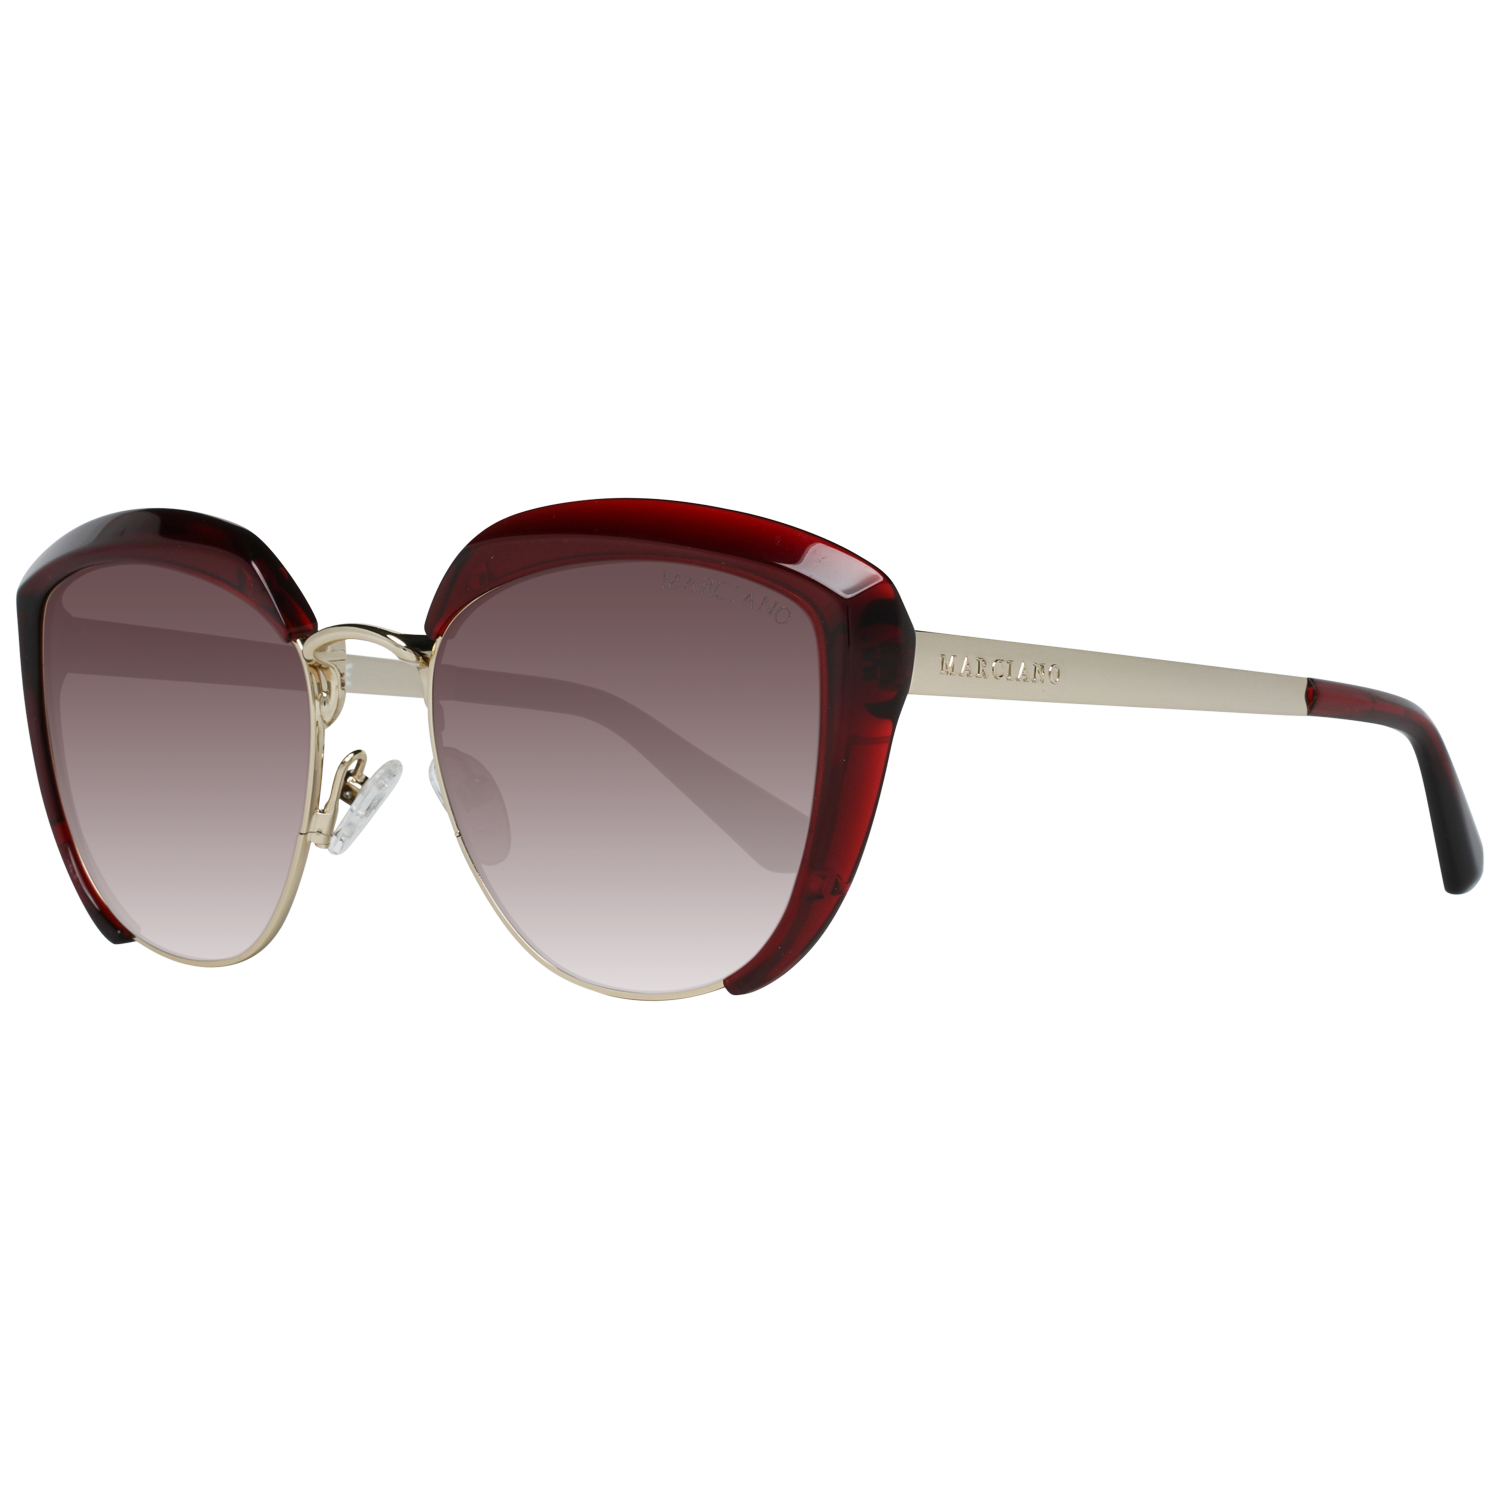 Guess by Marciano Sunglasses GM0791 66F 54 Red